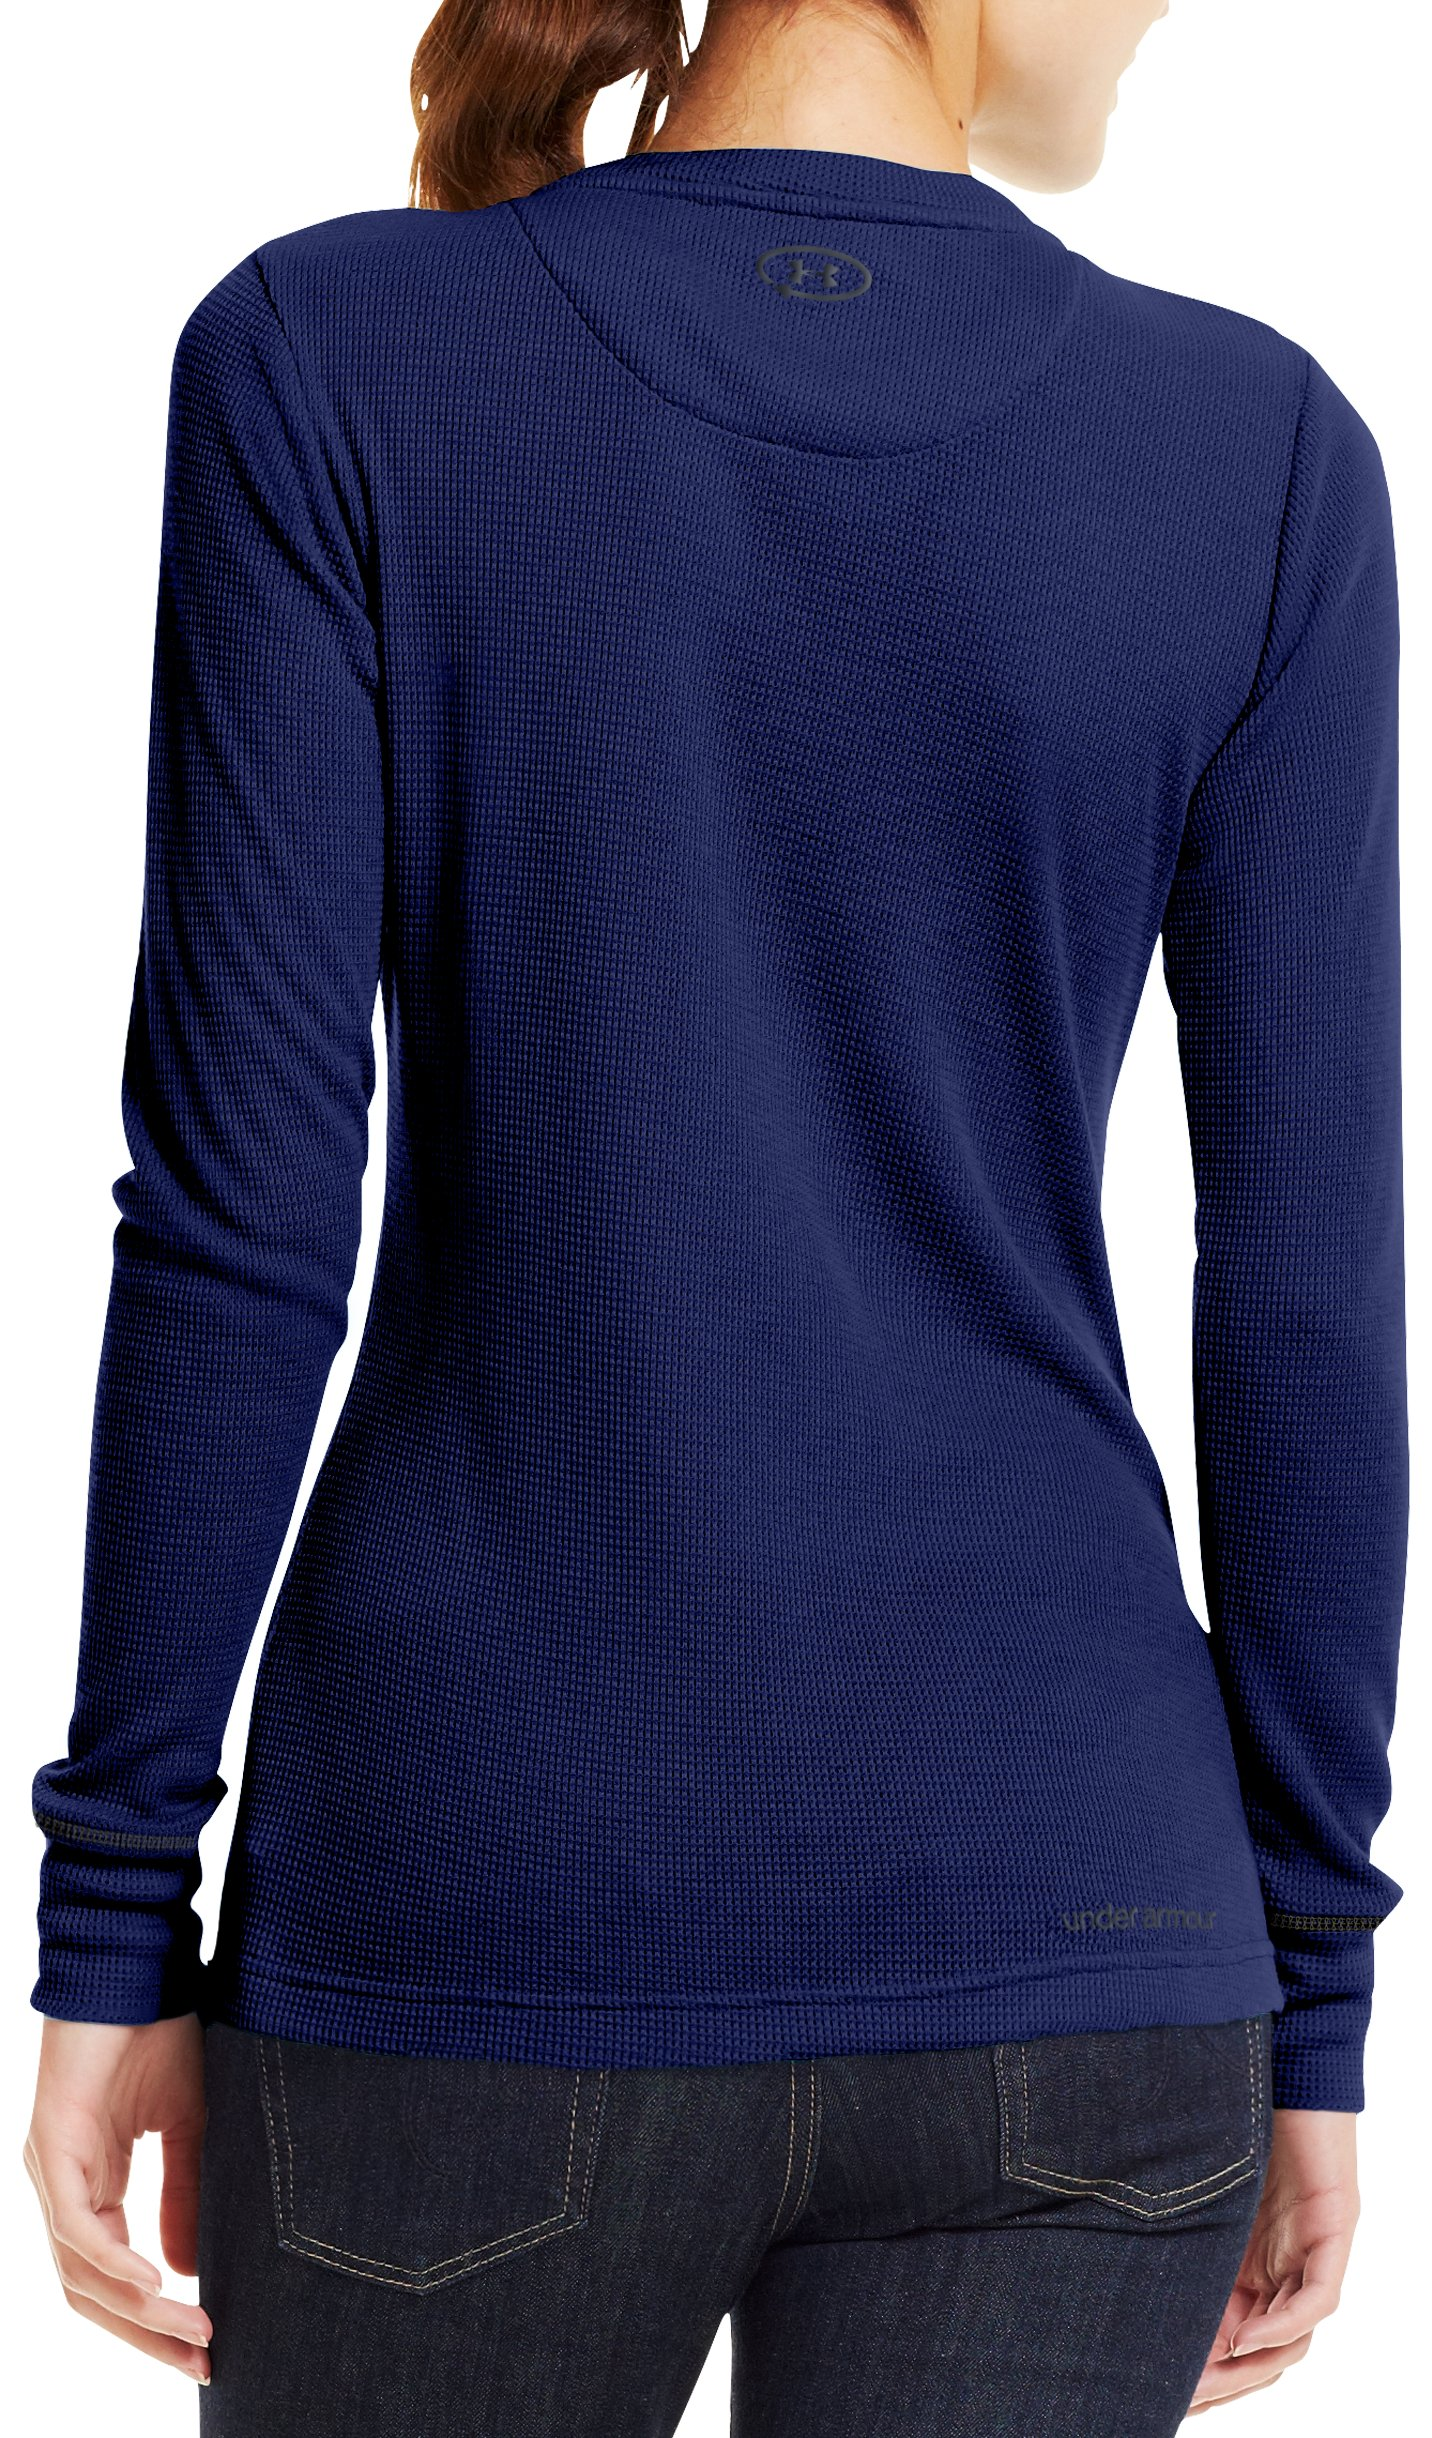 Women's Waffle Tackle Twill Long Sleeve Crew, REGAL, Back